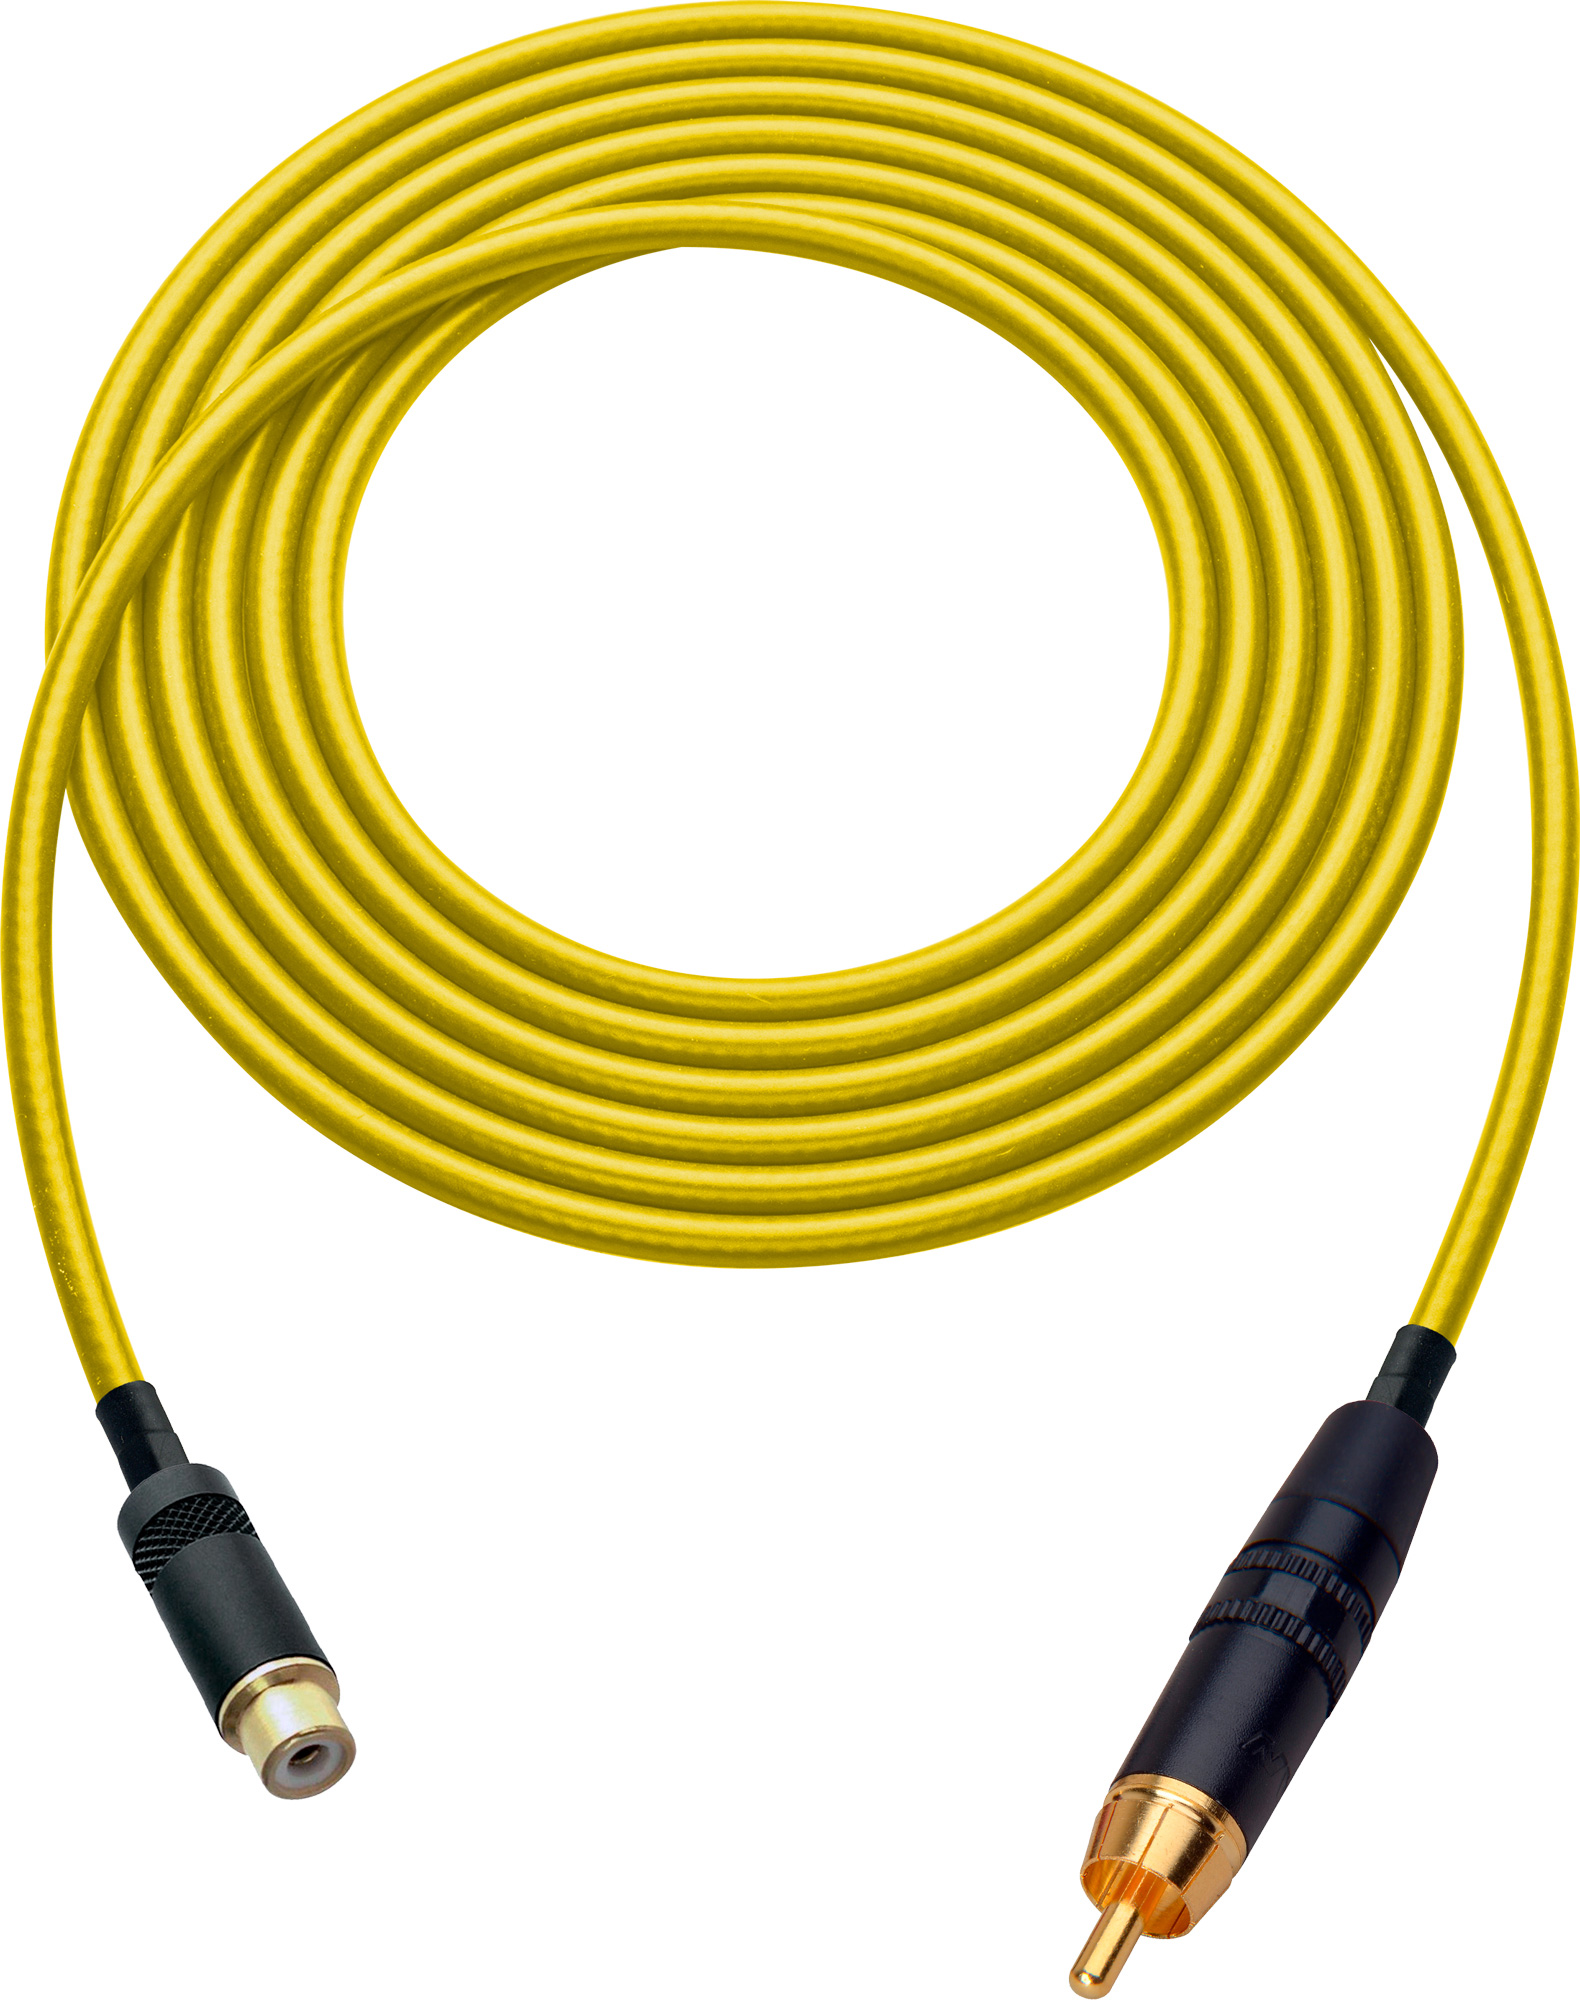 Laird HDAV-EXT-7-YW Belden 1505A RCA M to F Extension Cable For Audio or HD Video - 7 Foot Yellow